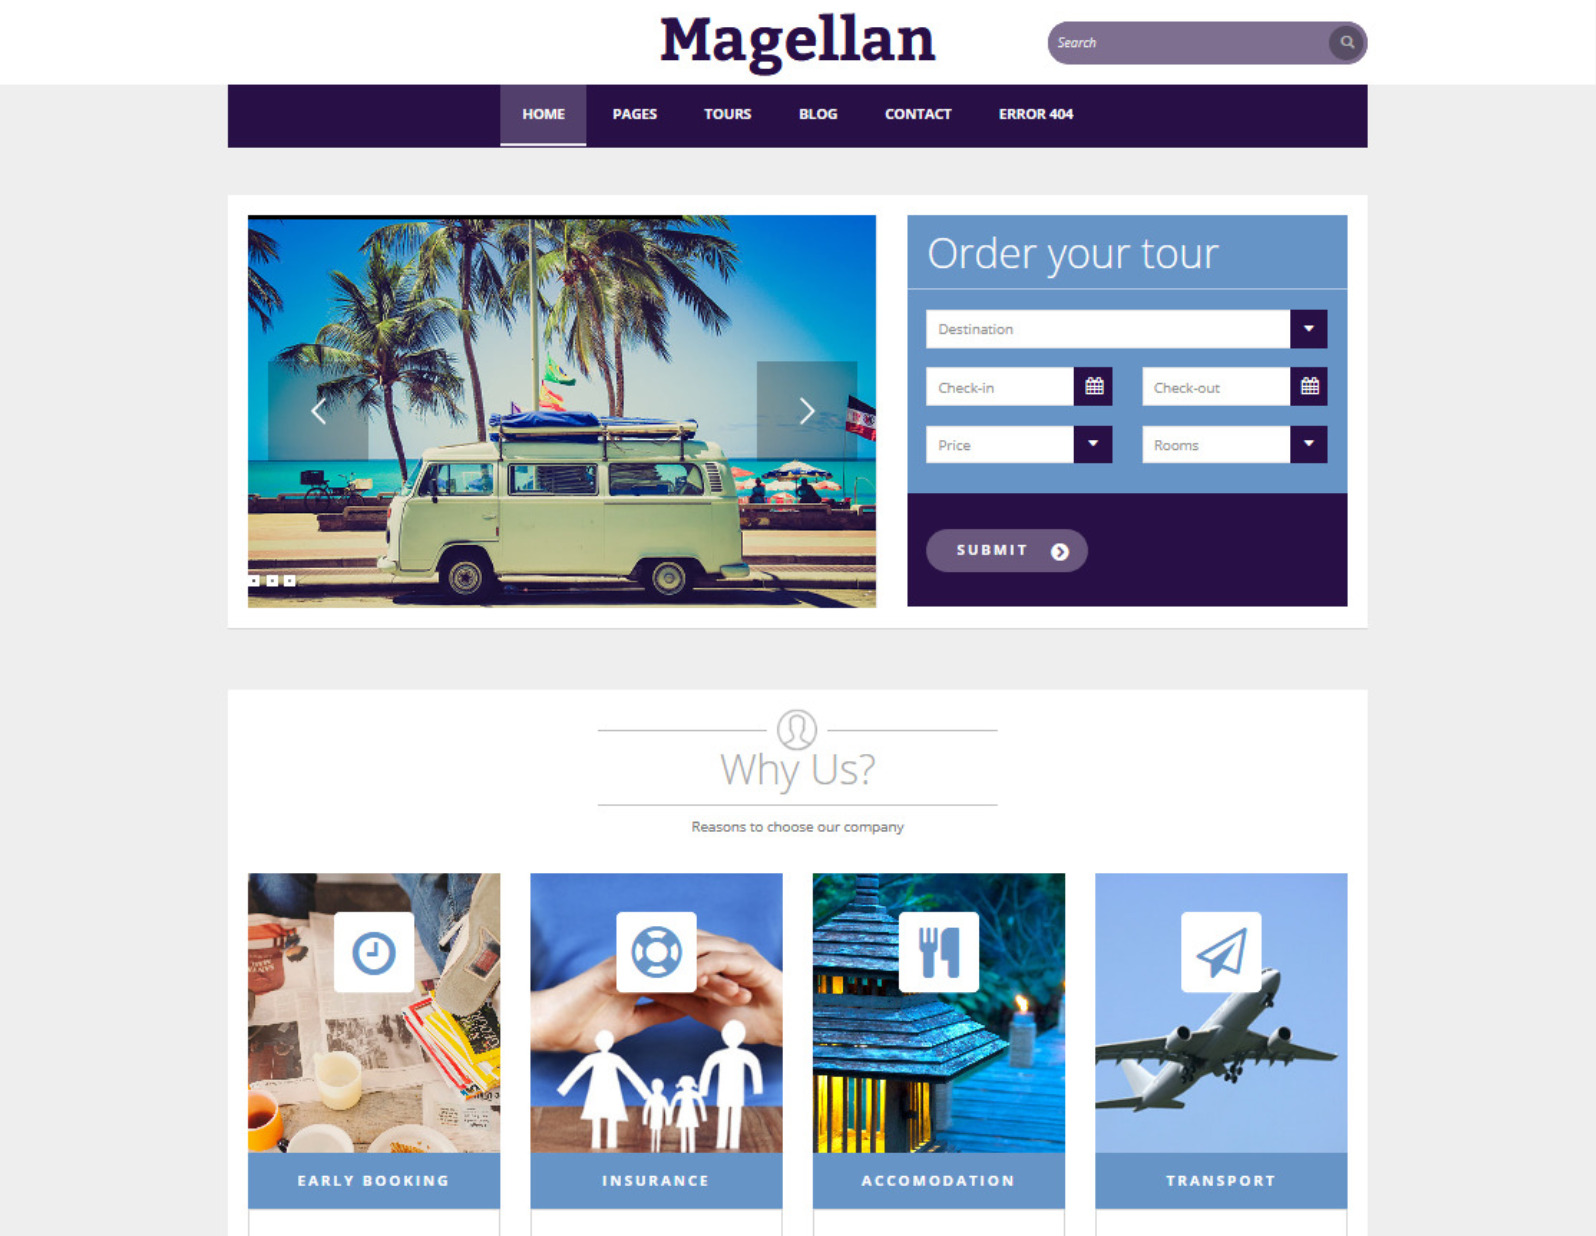 Magellan Hotel and Travel Agency Theme